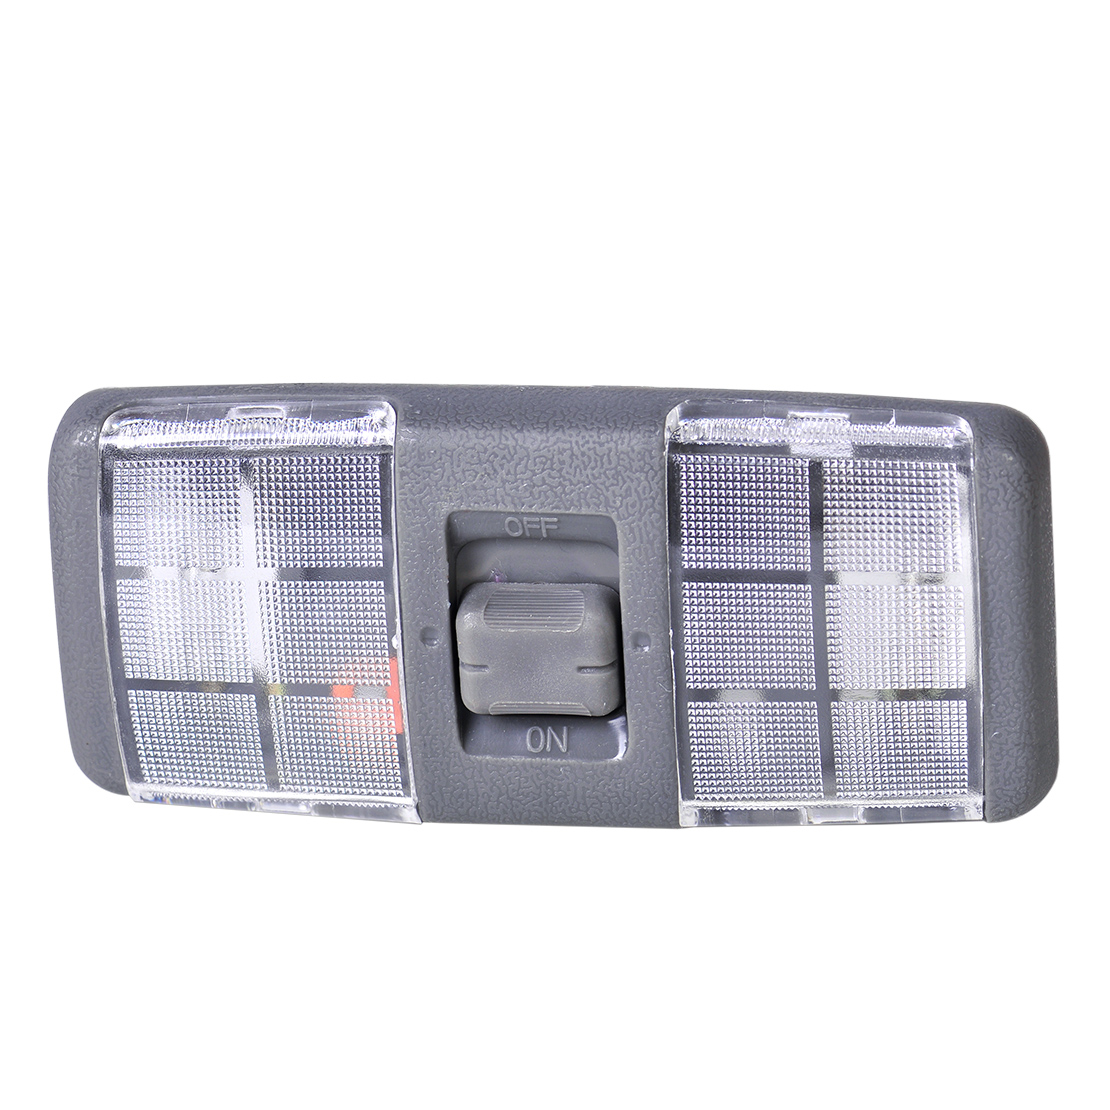 CITALL Car Interior Roof Dome Light Reading Lamp MB774928 for Mitsubishi Pajero Shogun Montero V31 V32 V33 V43 1990 - 2003 2004